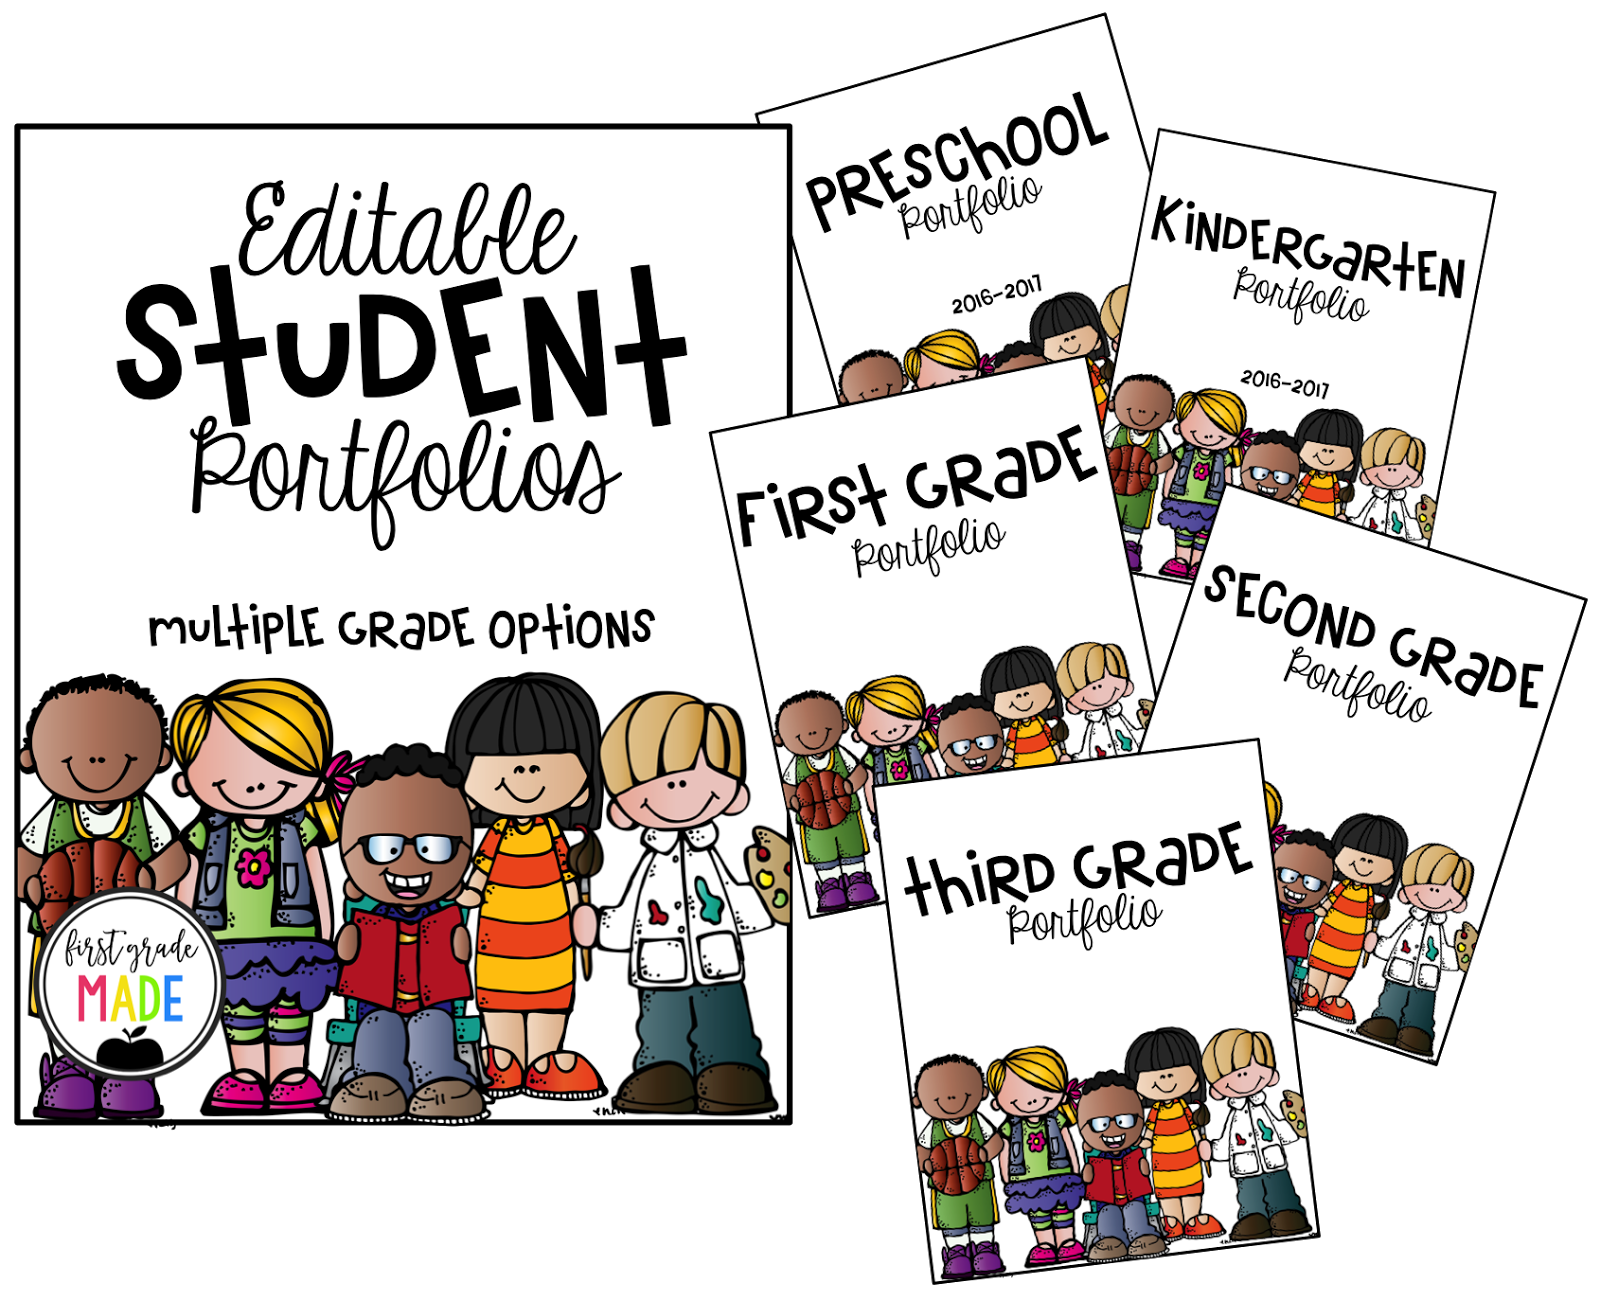 starting off the year with student portfolios